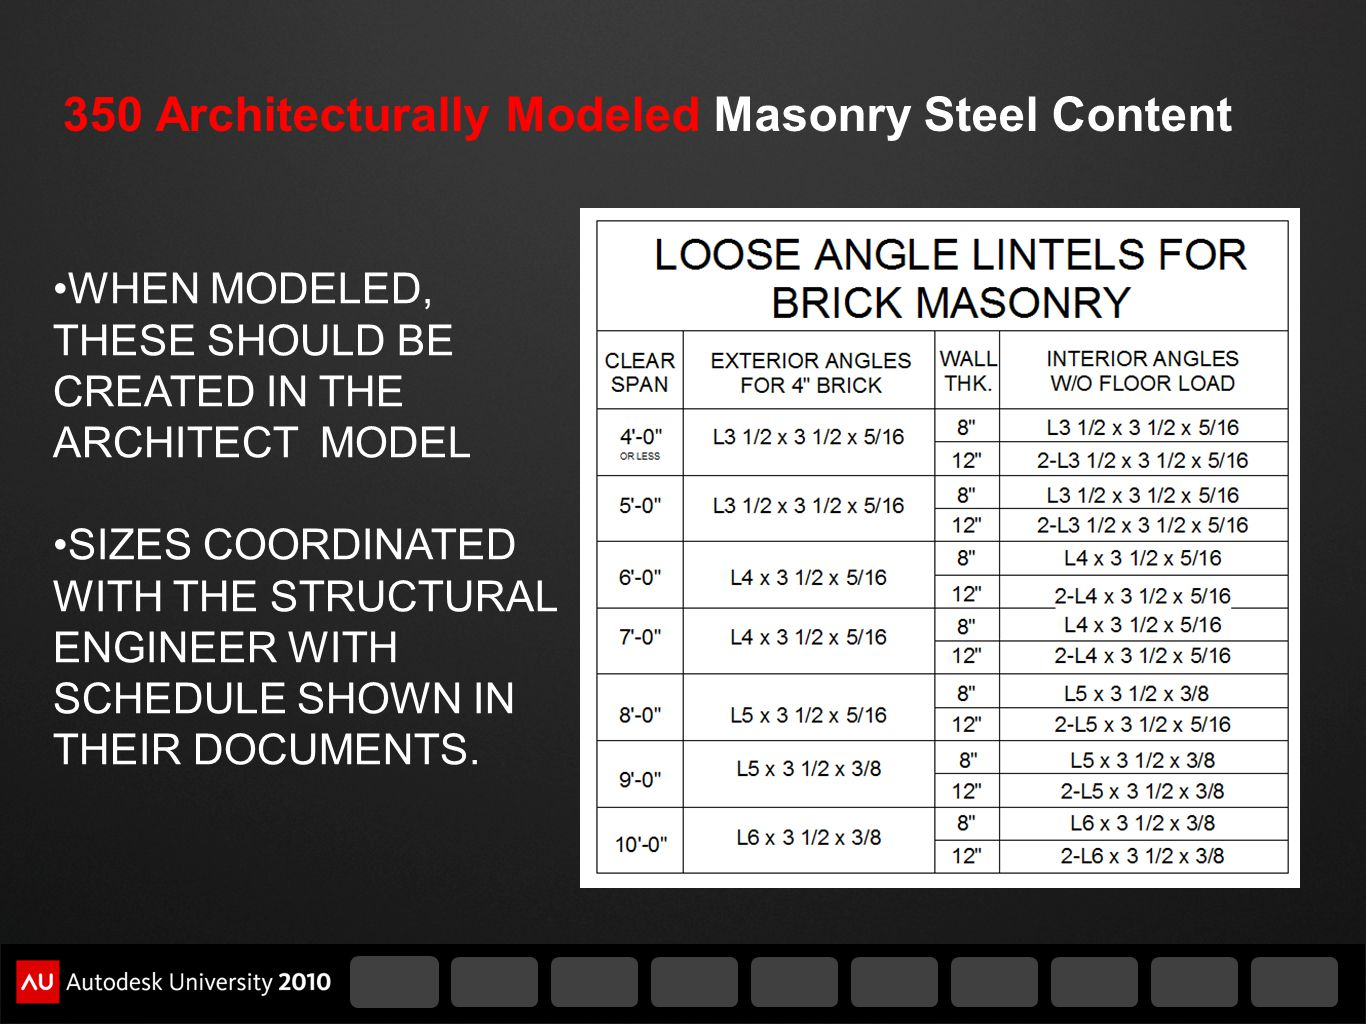 350 Architecturally Modeled Masonry Steel Content WHEN MODELED, THESE SHOULD BE CREATED IN THE ARCHITECT MODEL SIZES COORDINATED WITH THE STRUCTURAL E